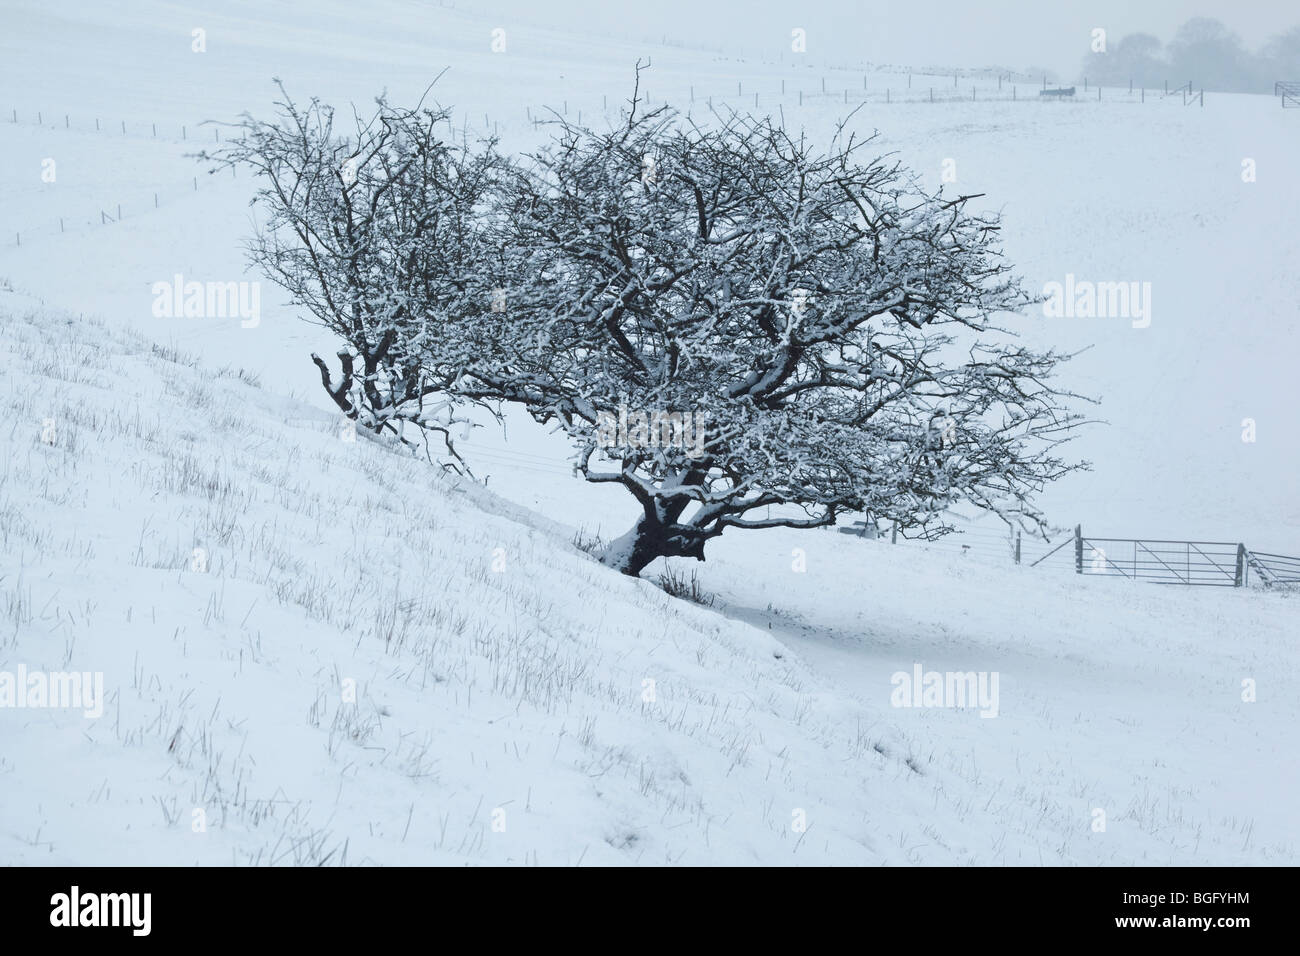 A Hawthorn tree in a snowy downland landscape - Stock Image